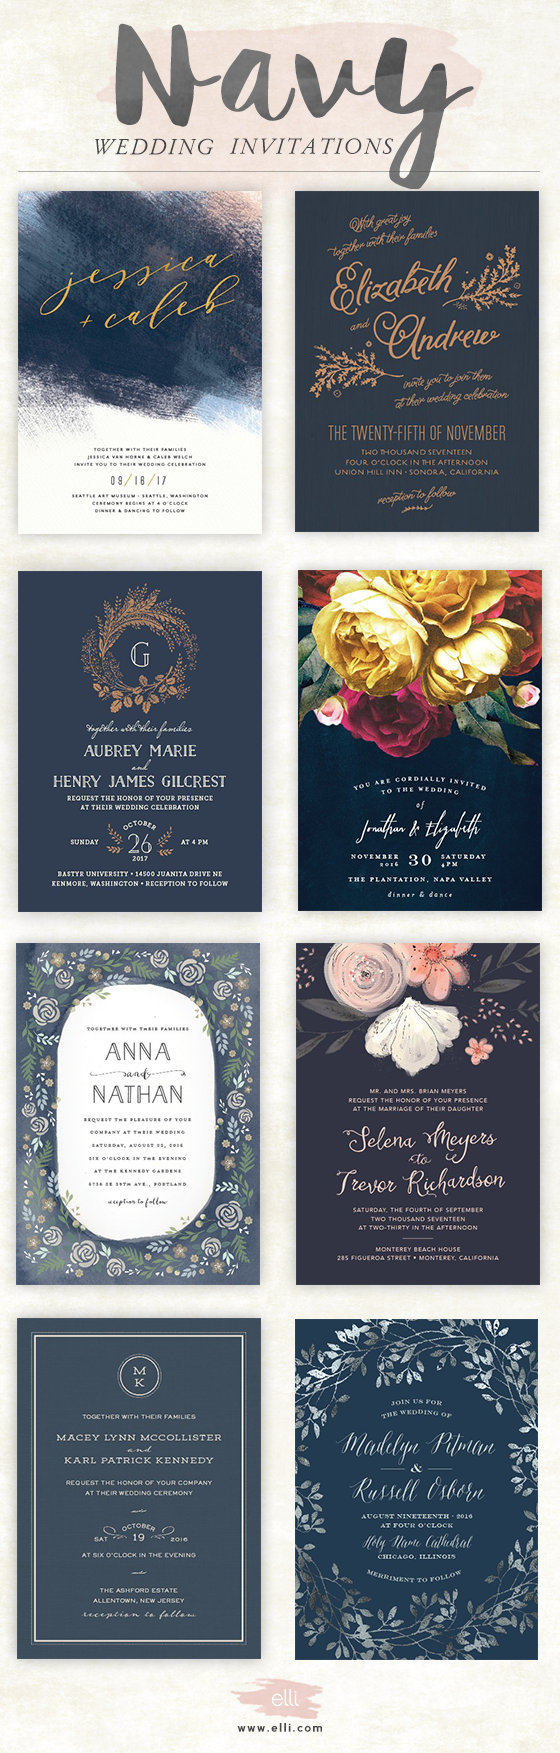 real simple unique wedding invitations%0A Now trending  navy wedding invitations from Elli com